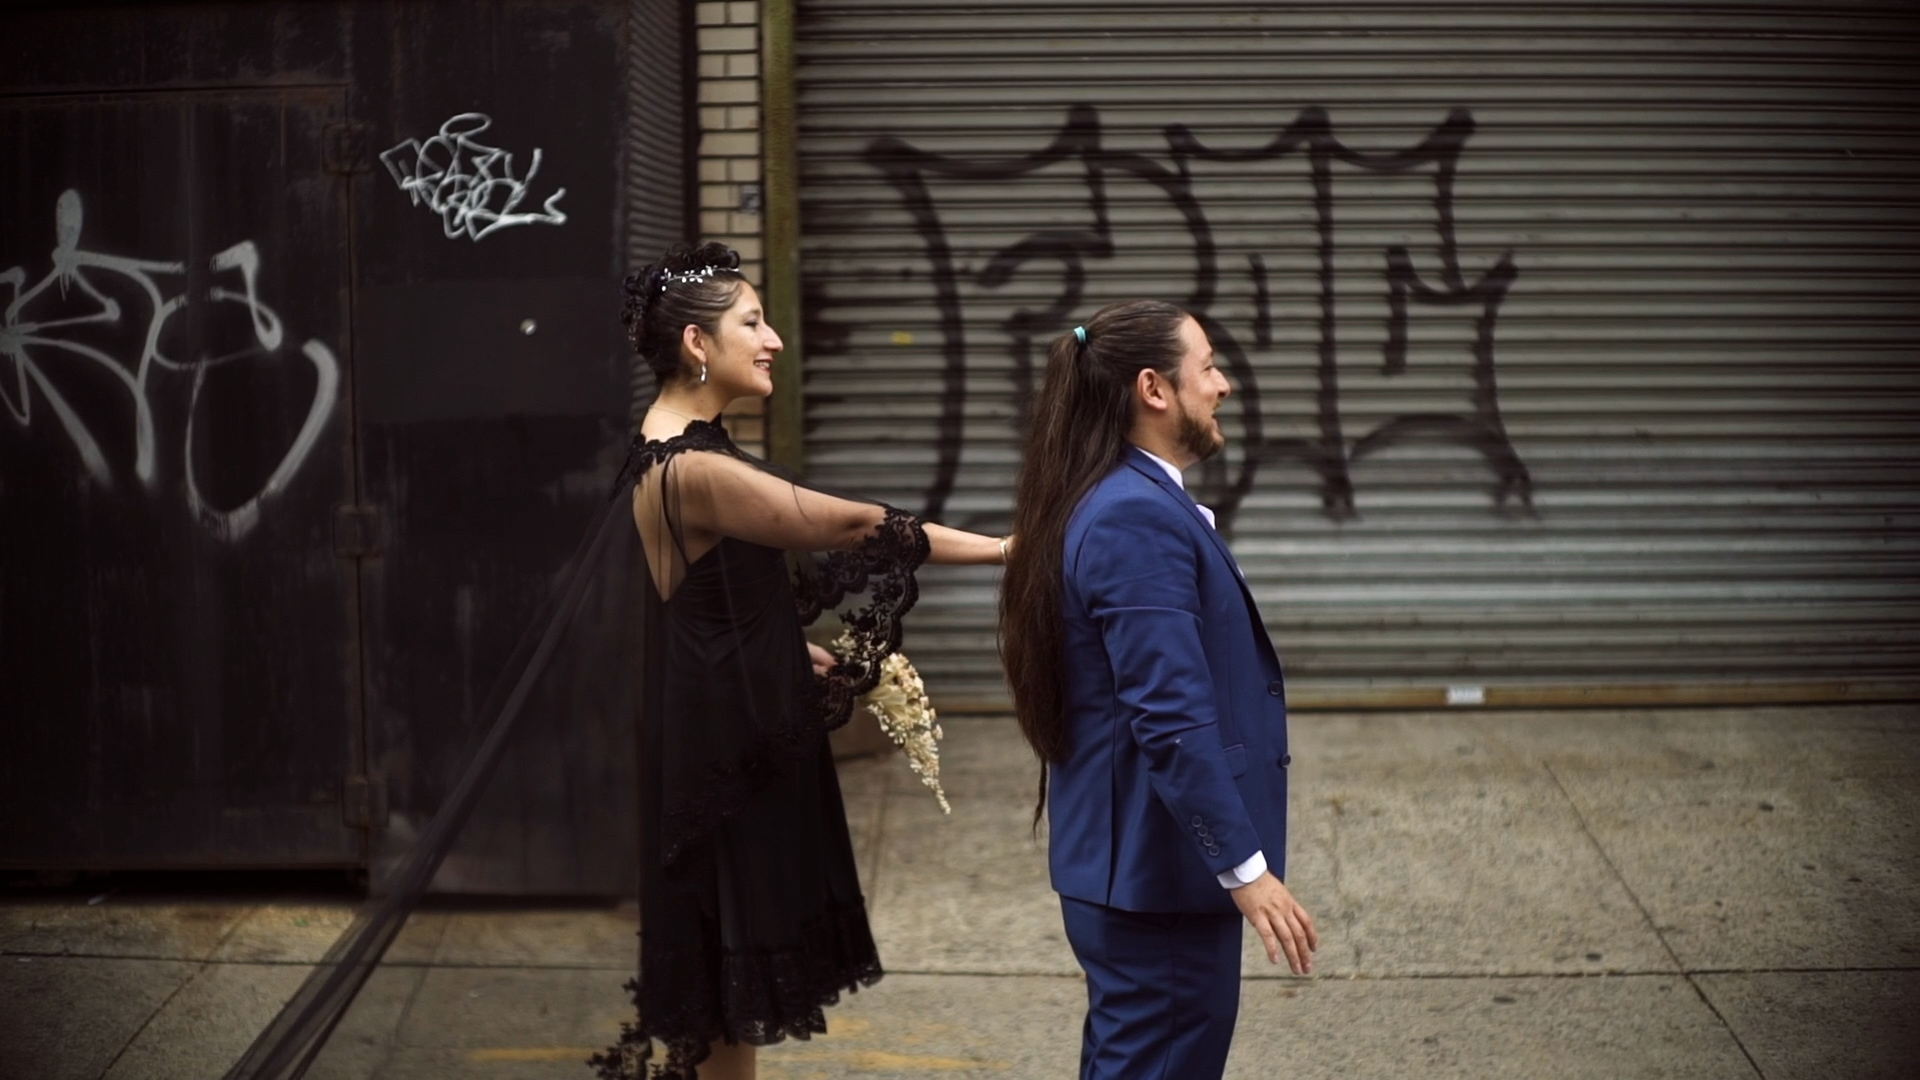 Video-de-una-boda-mexicana-en-Brooklyn-6